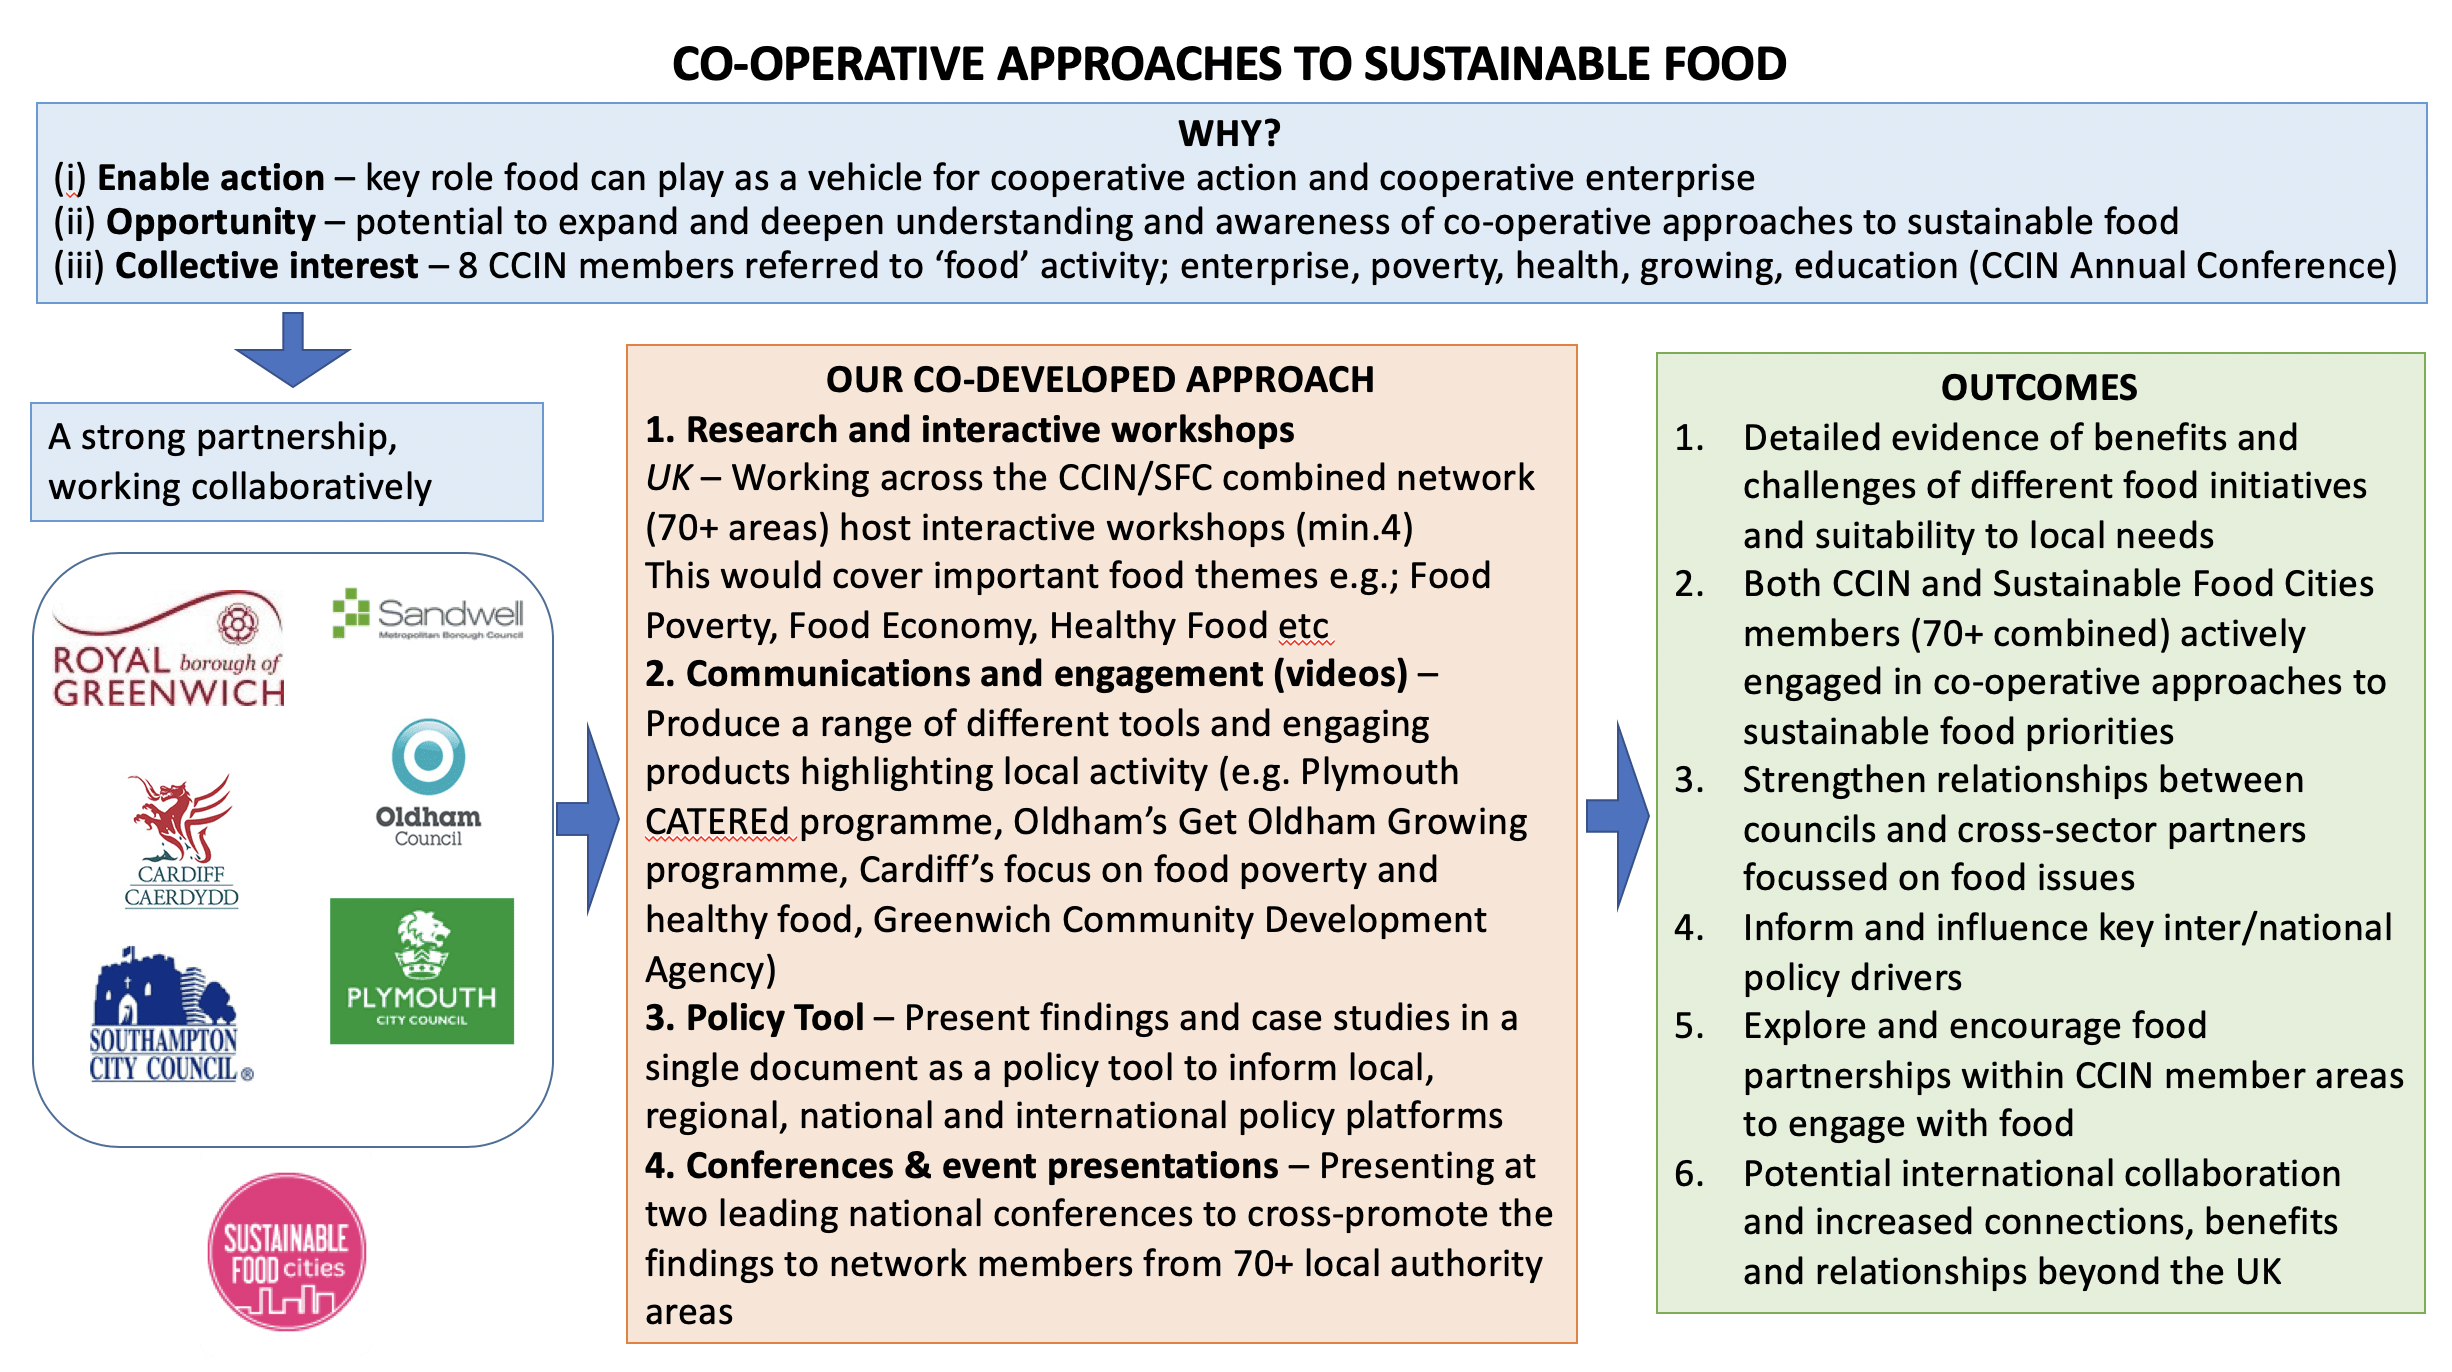 Coop approaches to sustainable food